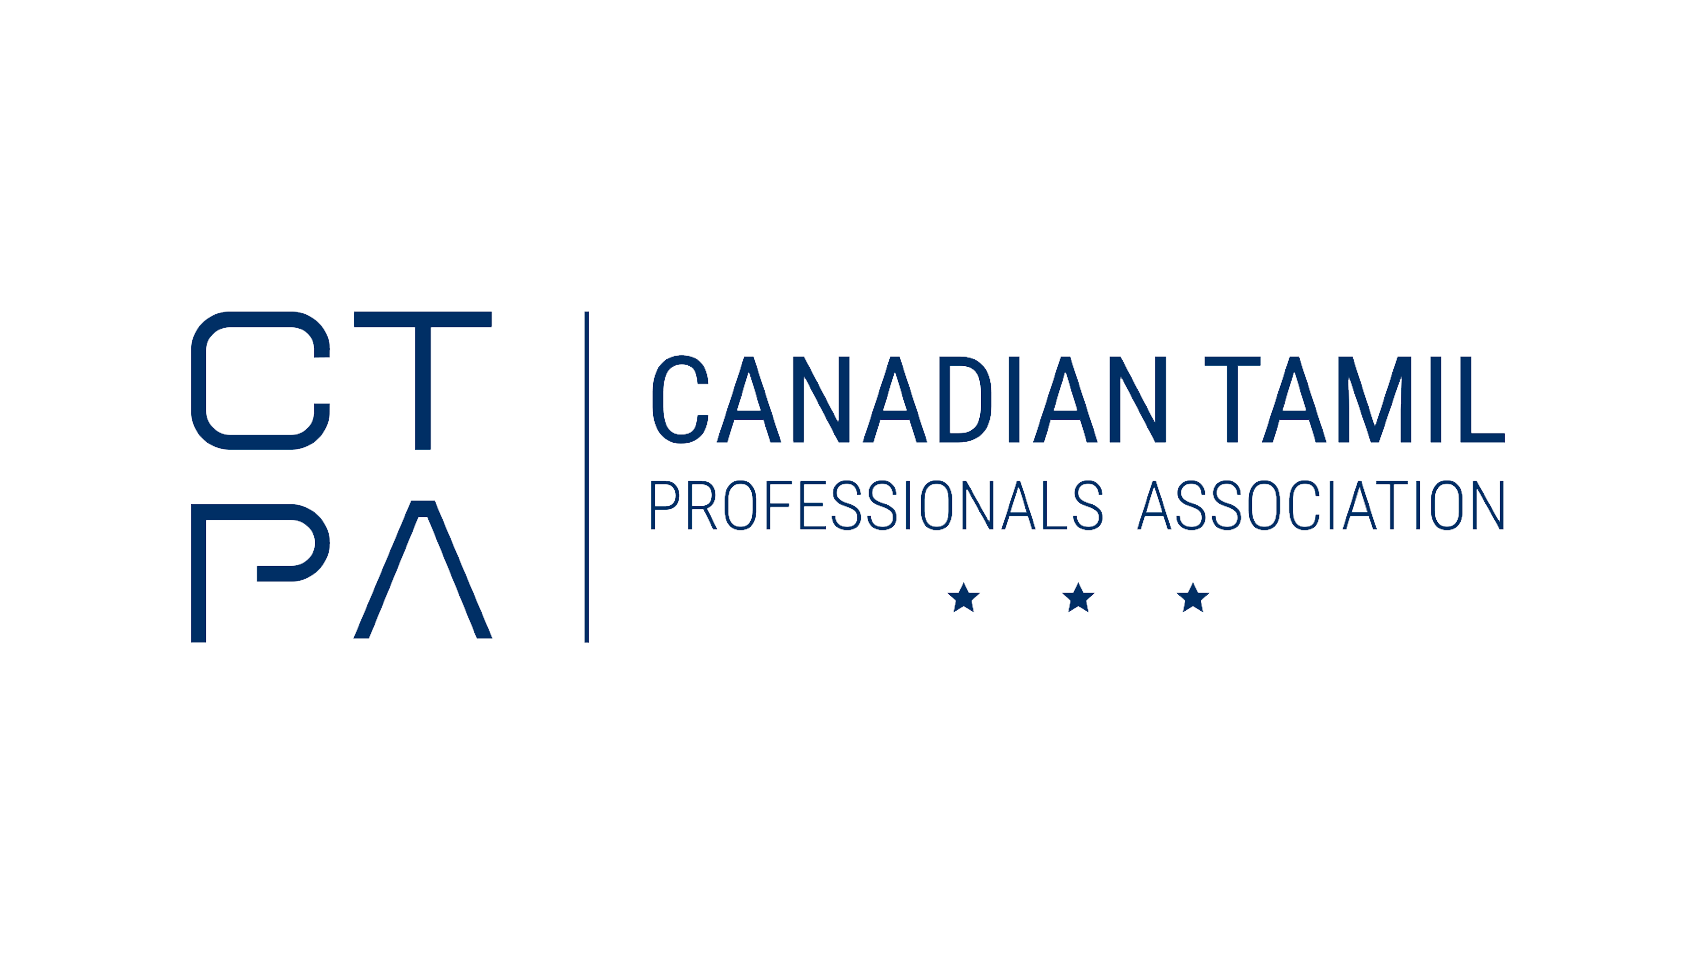 Canadian Tamil Professionals Association